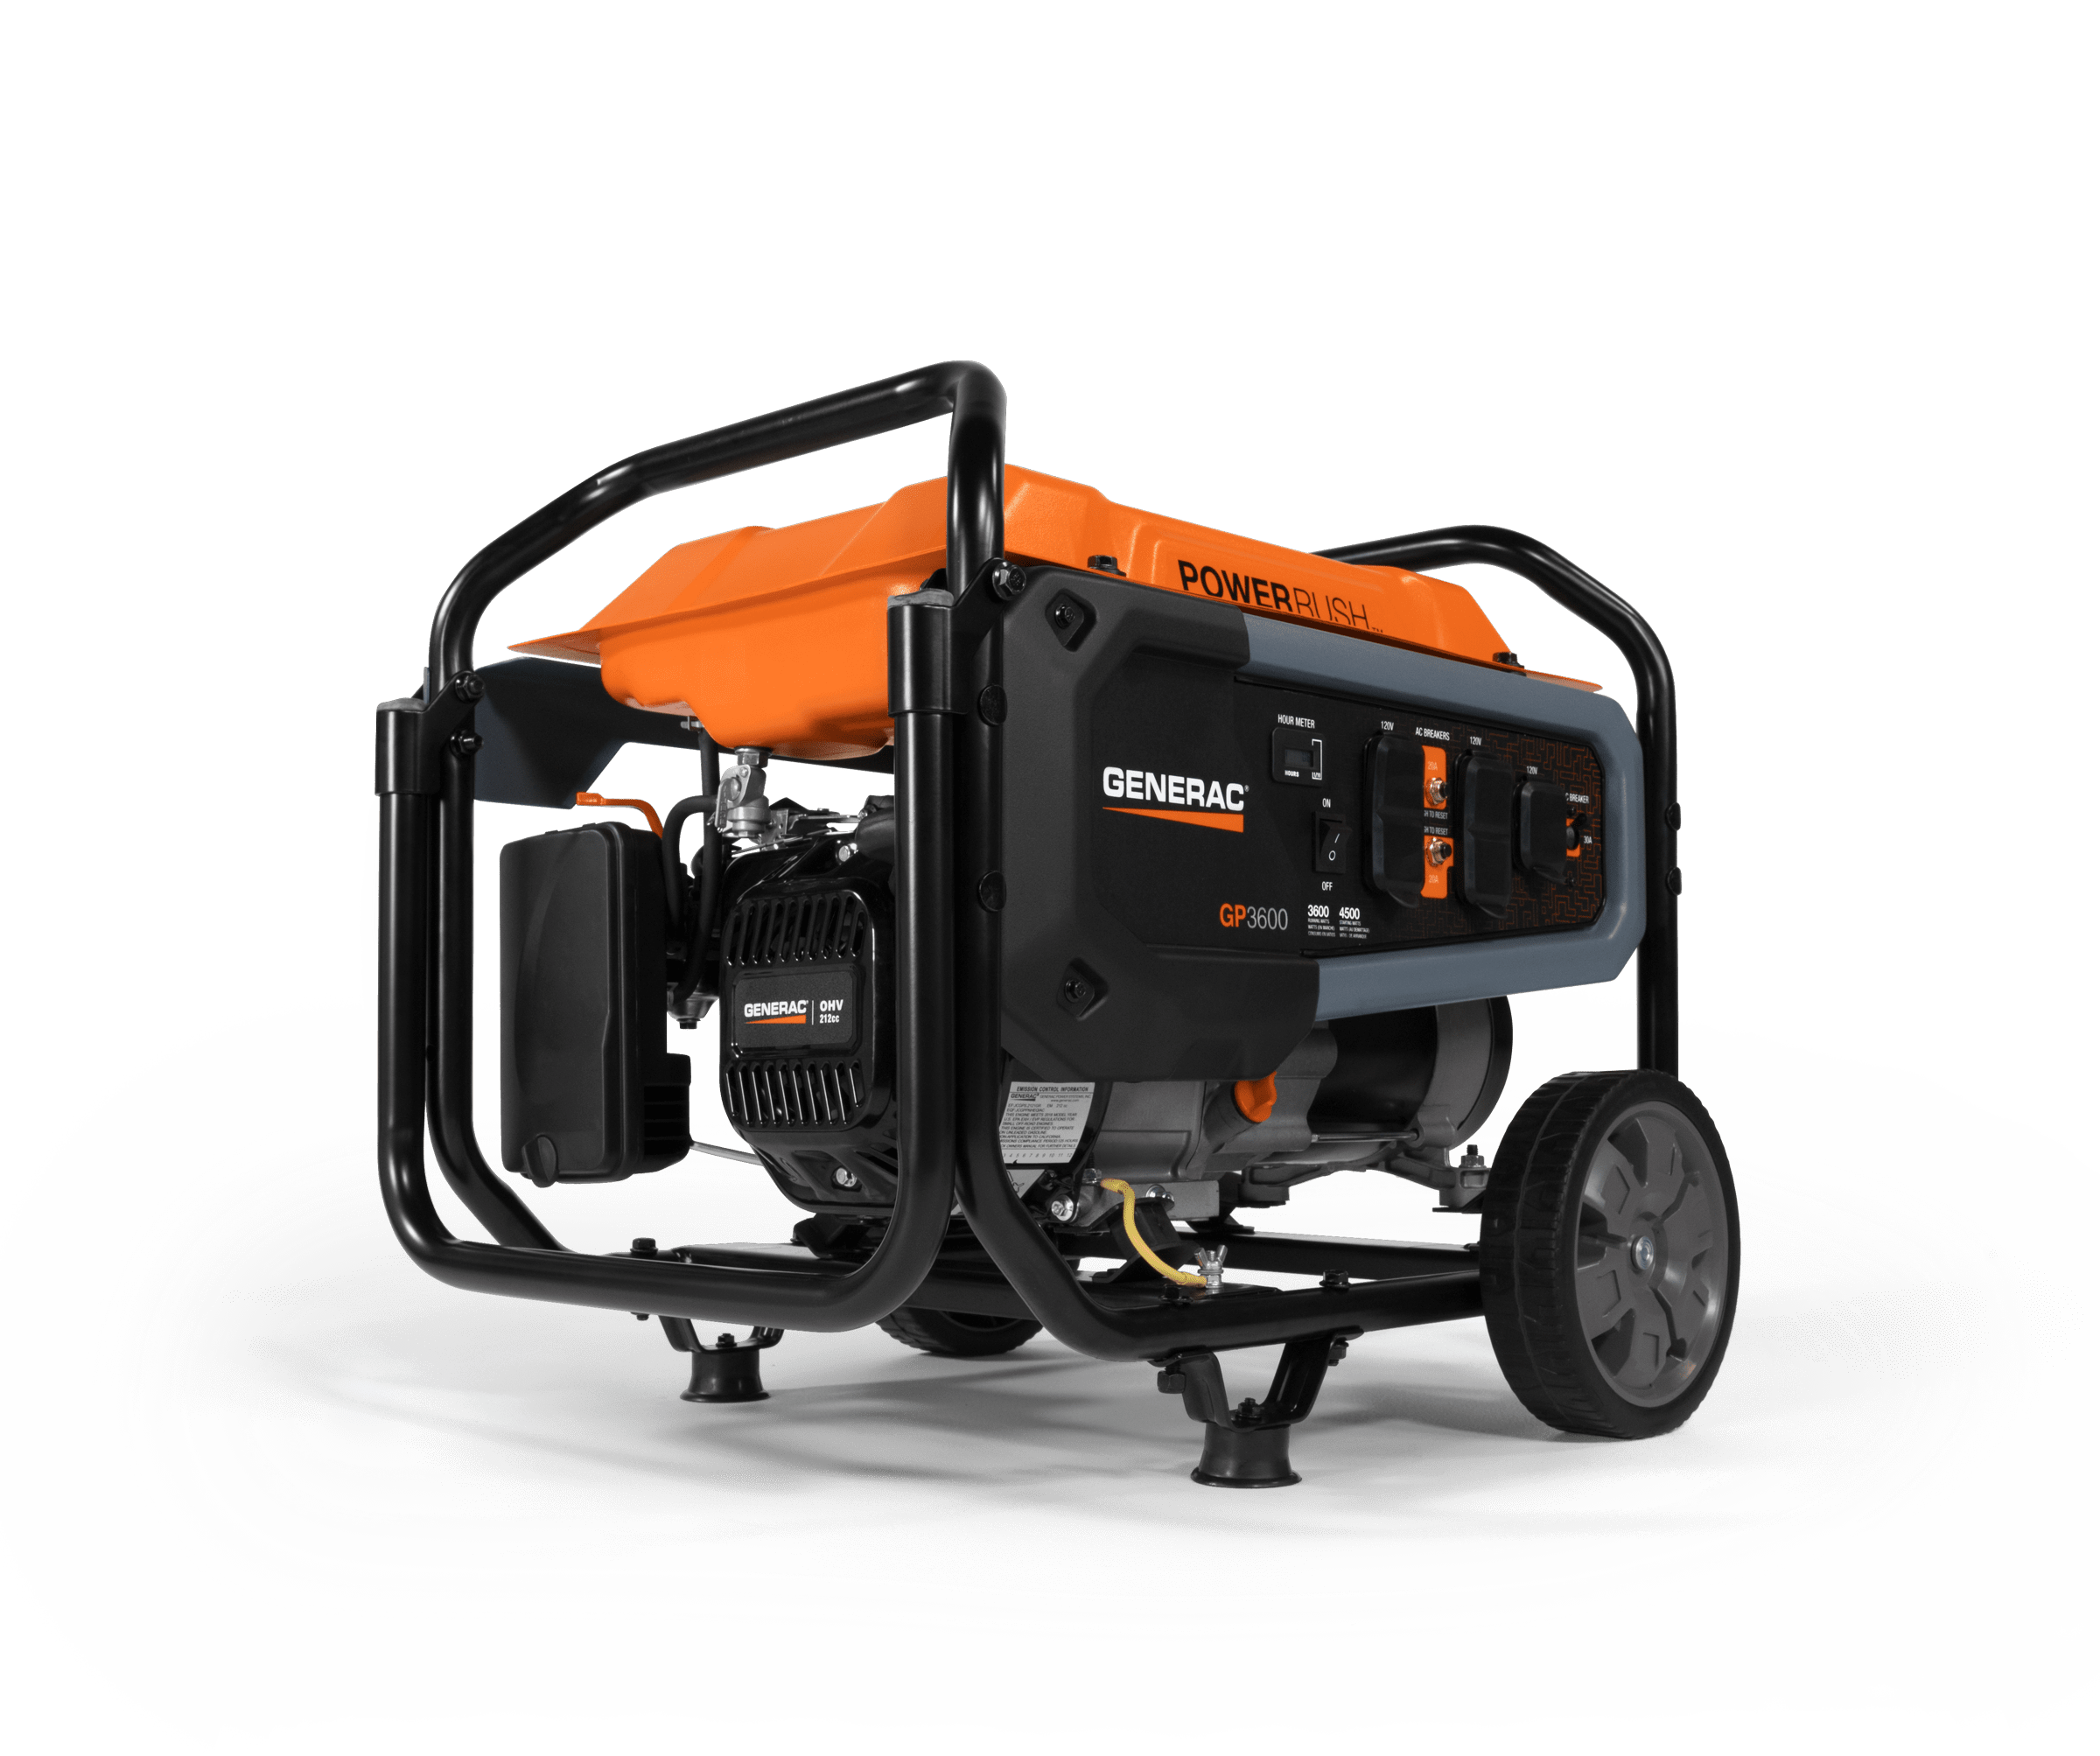 hight resolution of generac power systems gp series portable generators power 92961 generac portable generator 2400 watt wiring diagram